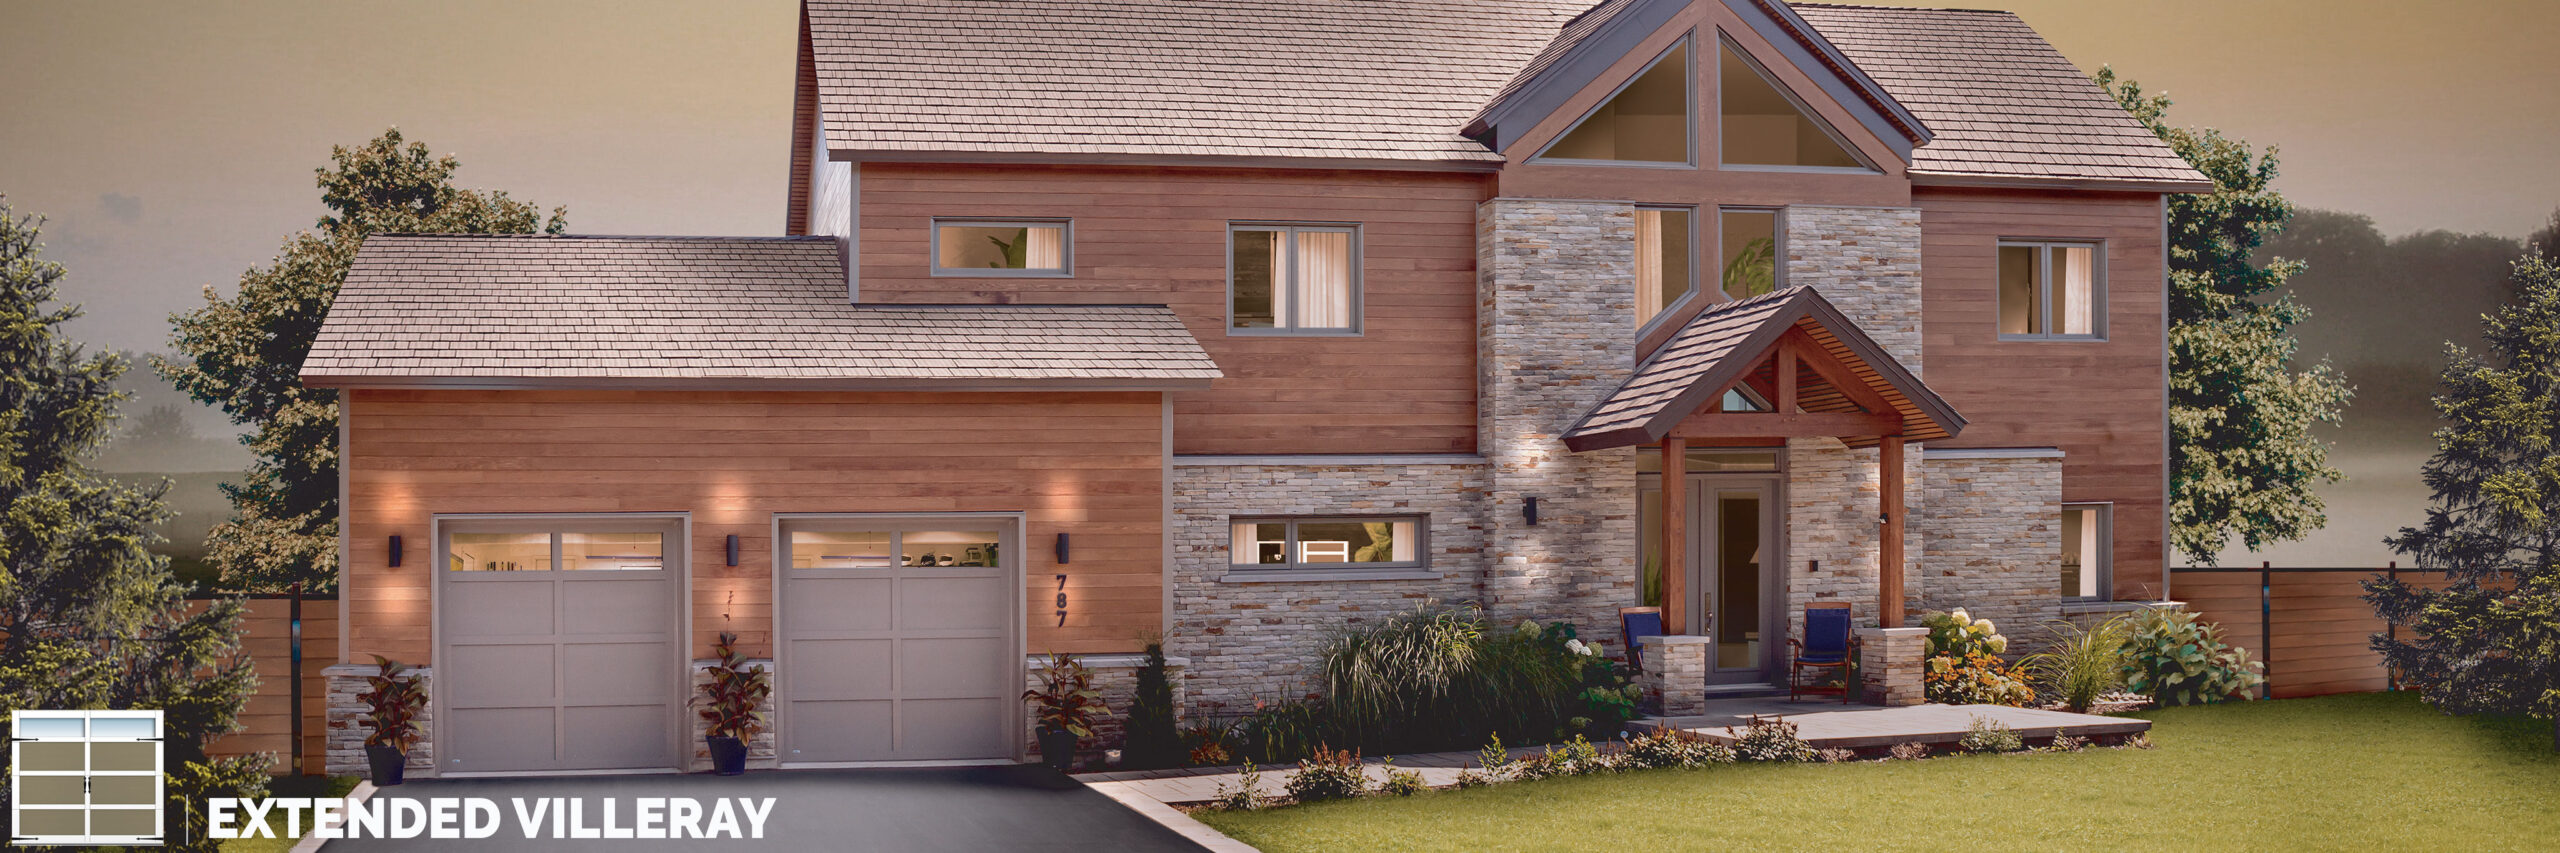 extended villeray carriage house style garage door by garex scaled